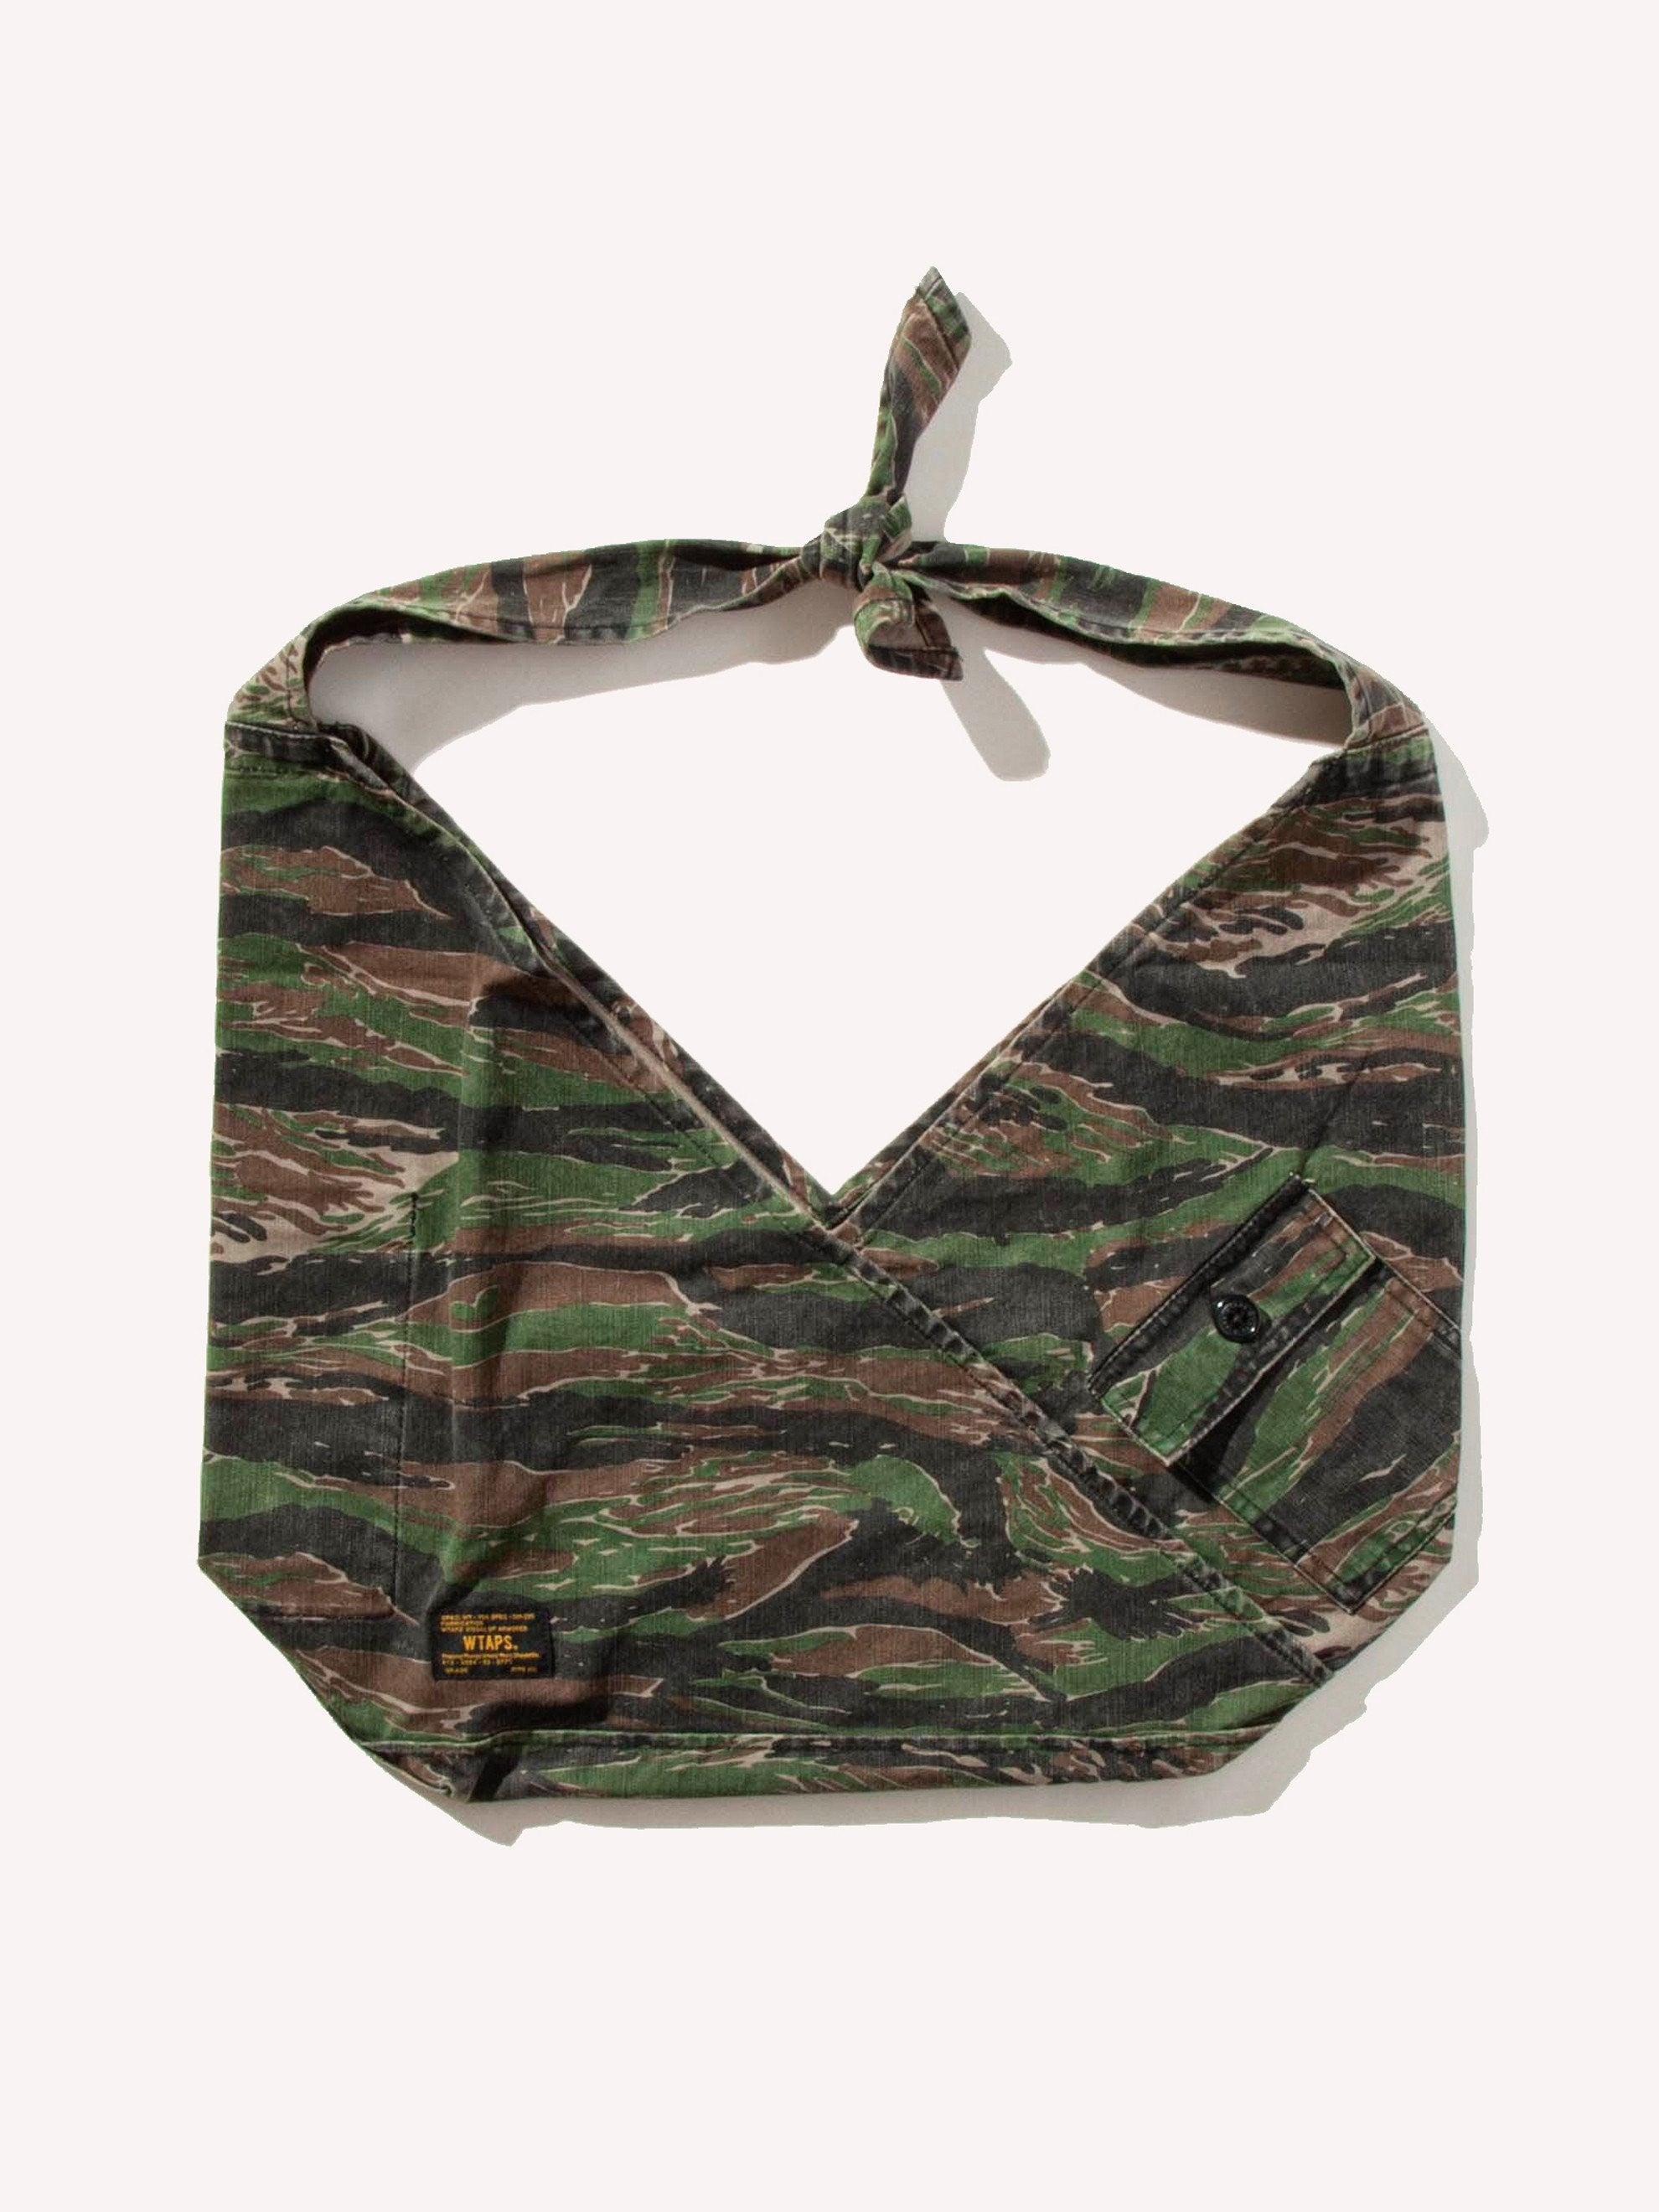 Tiger Stripe Pep Bag (Tiger Stripe Camo) 1